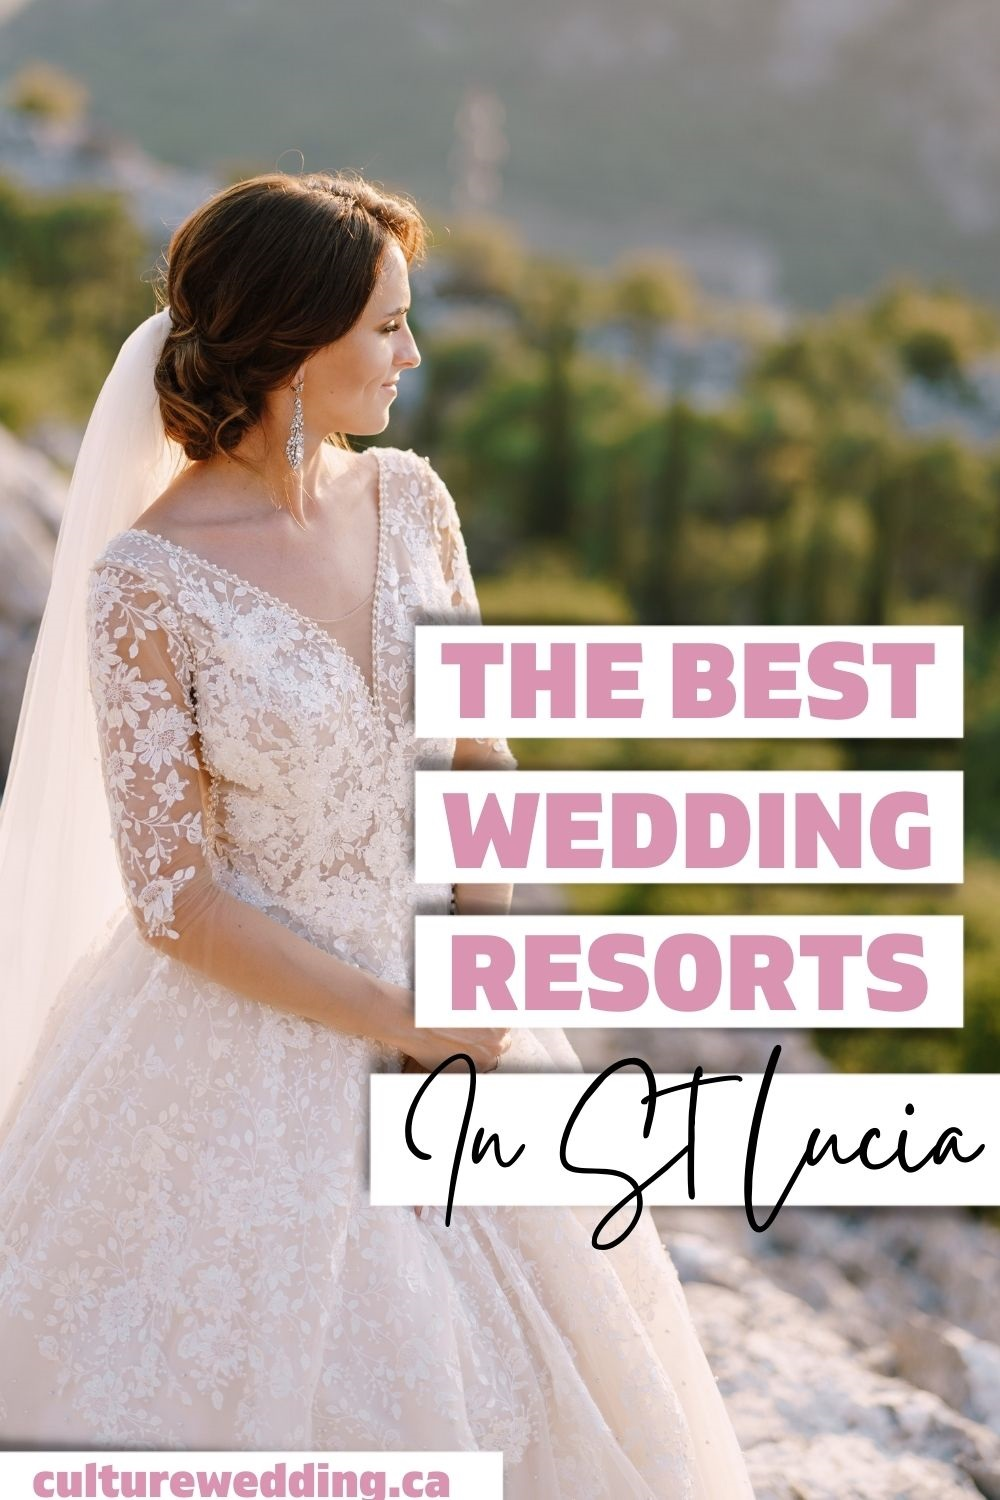 The 10 Best St Lucia Wedding Resorts to Get Married - St Lucia Weddings! The 10 Best St Lucia Wedding Resorts to get married. Where to get married in St Lucia. The best places to get married in St Lucia. St Lucia!